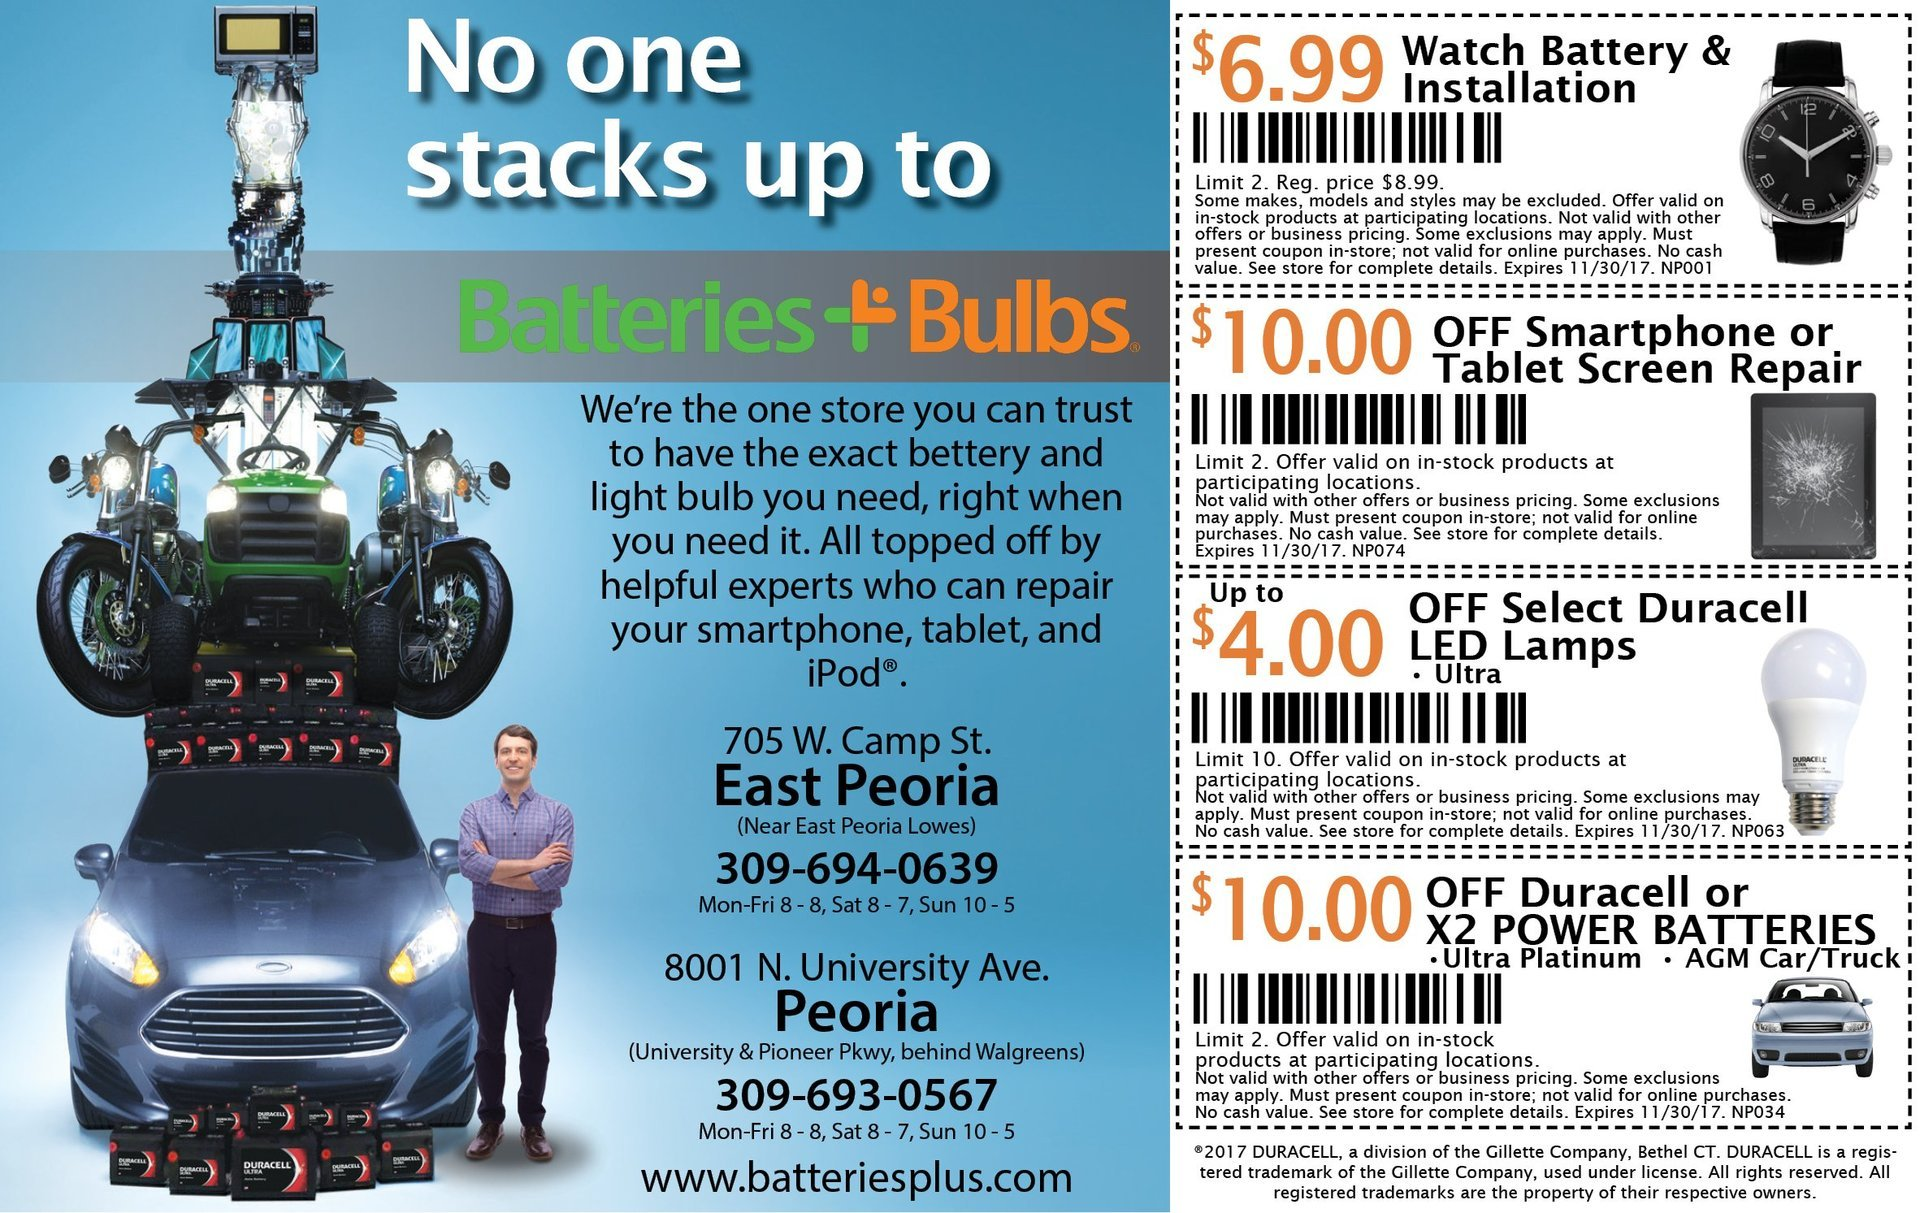 Batteries Plus Bulbs smartphone, tablet repair, led bulbs, car batteries coupons East Peoria, IL